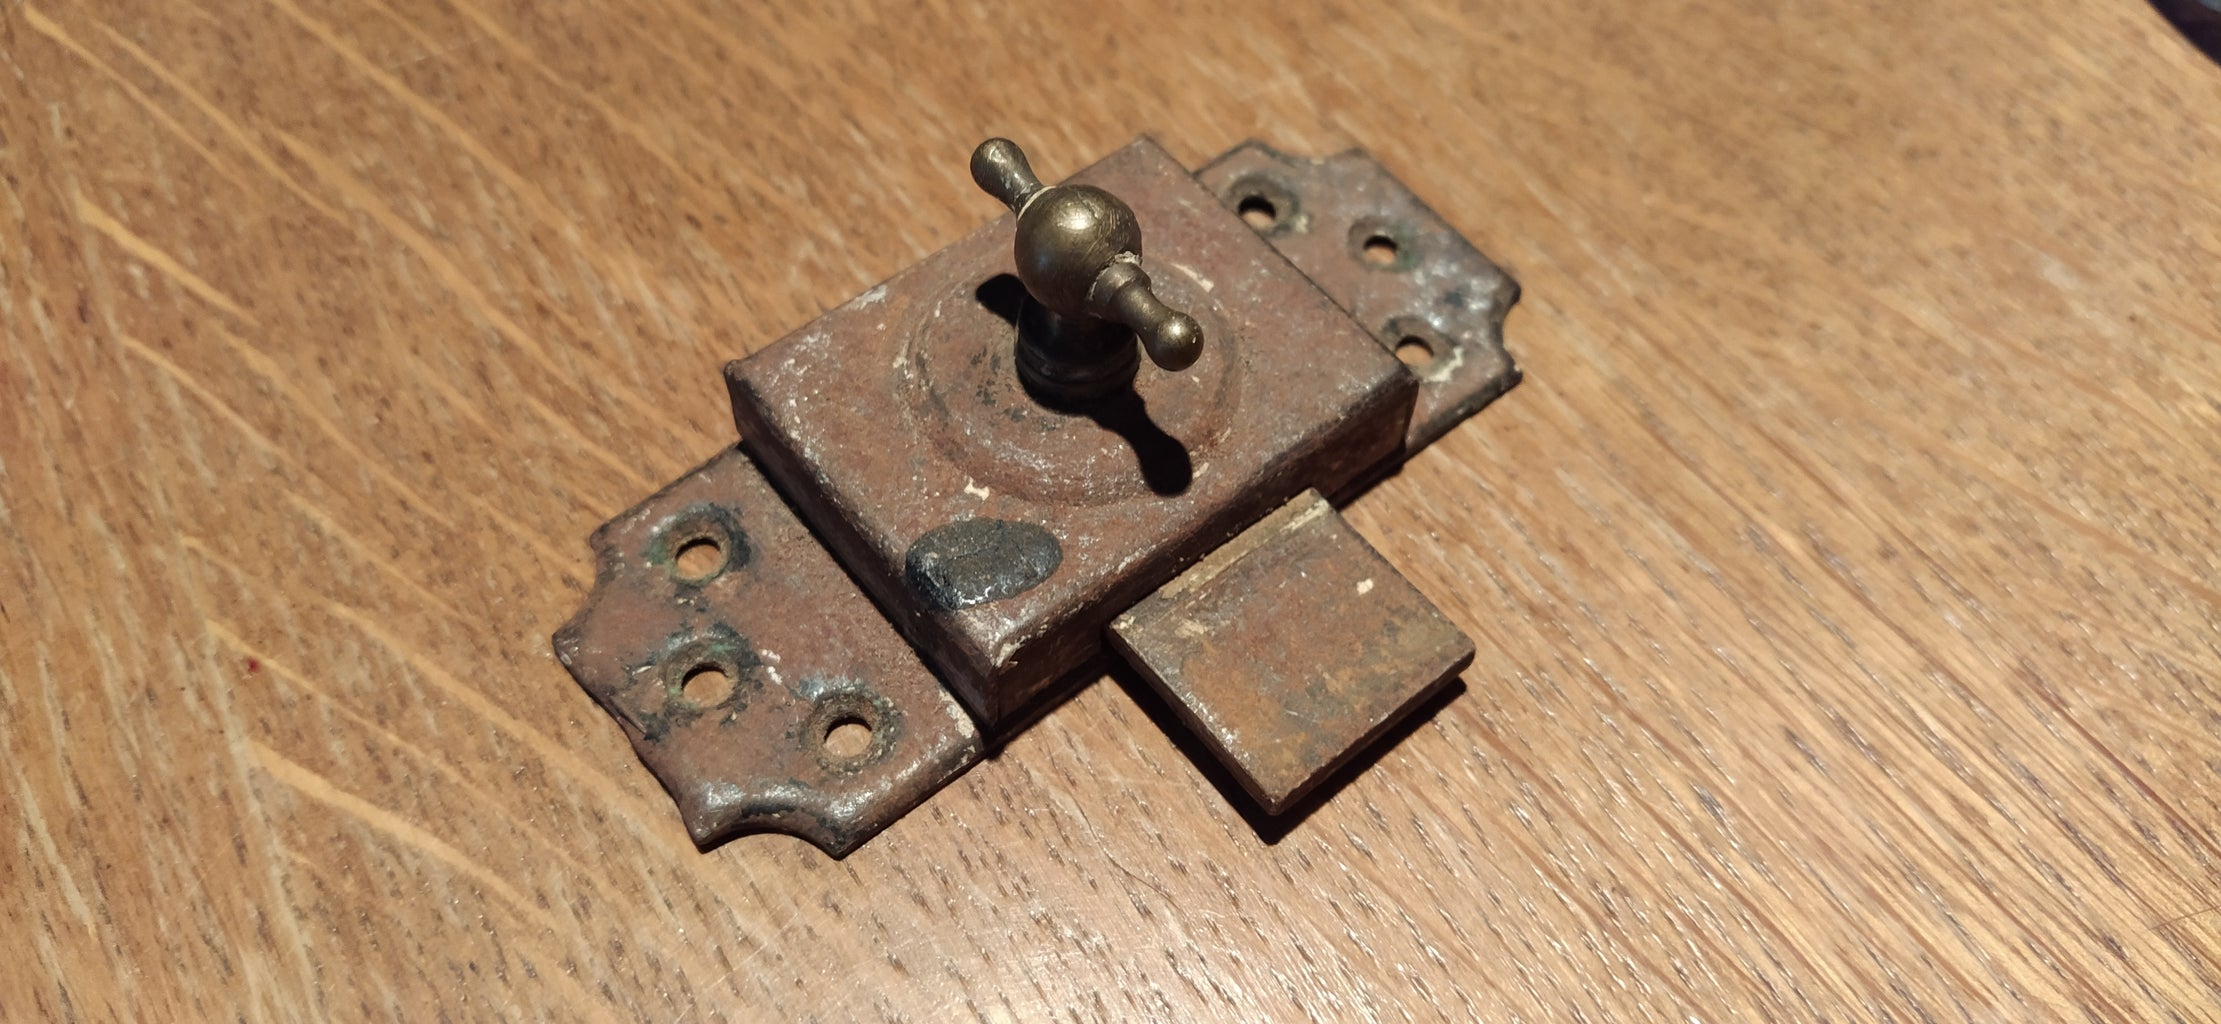 Cleaning Up a Rusty Latch